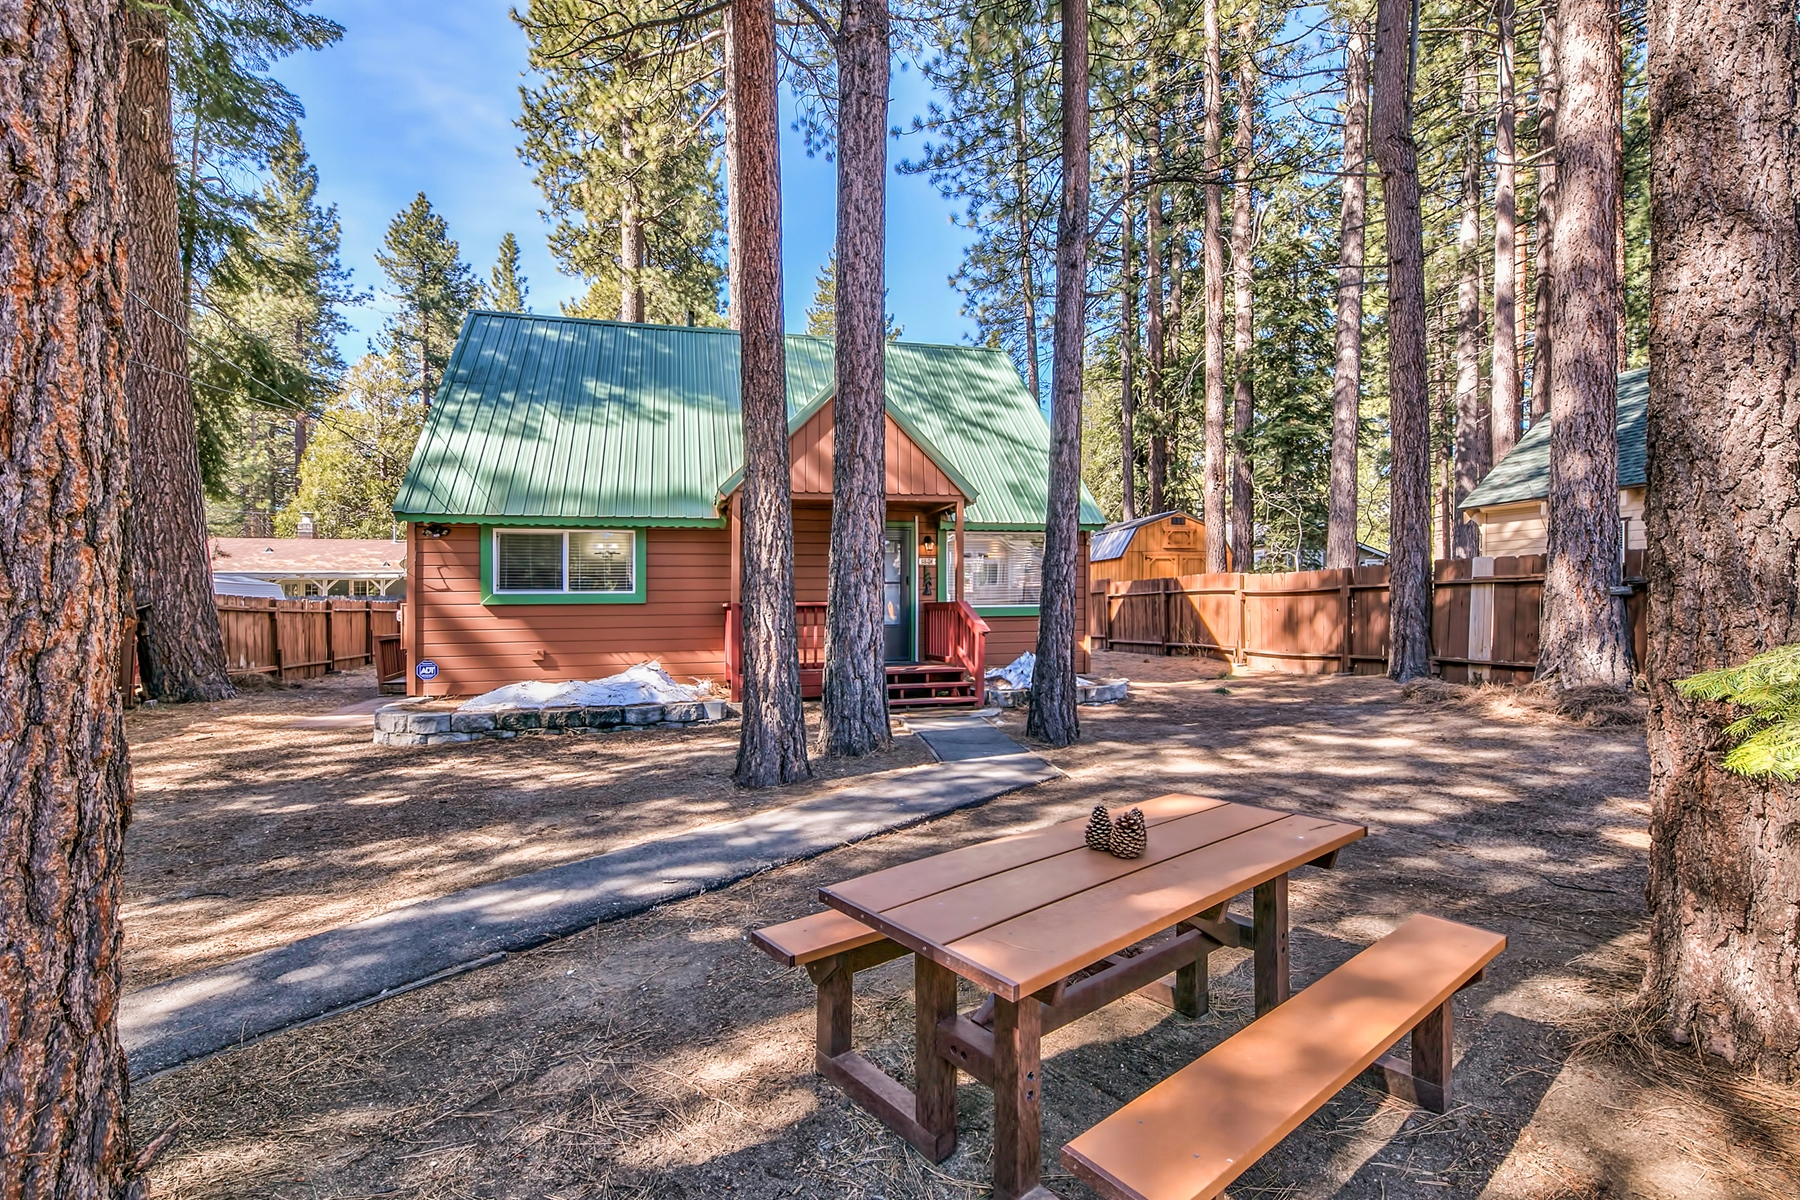 Property for Active at 880 Tahoe Island Drive, South Lake Drive, CA 96150 880 Tahoe Island Drive South Lake Tahoe, California 96150 United States